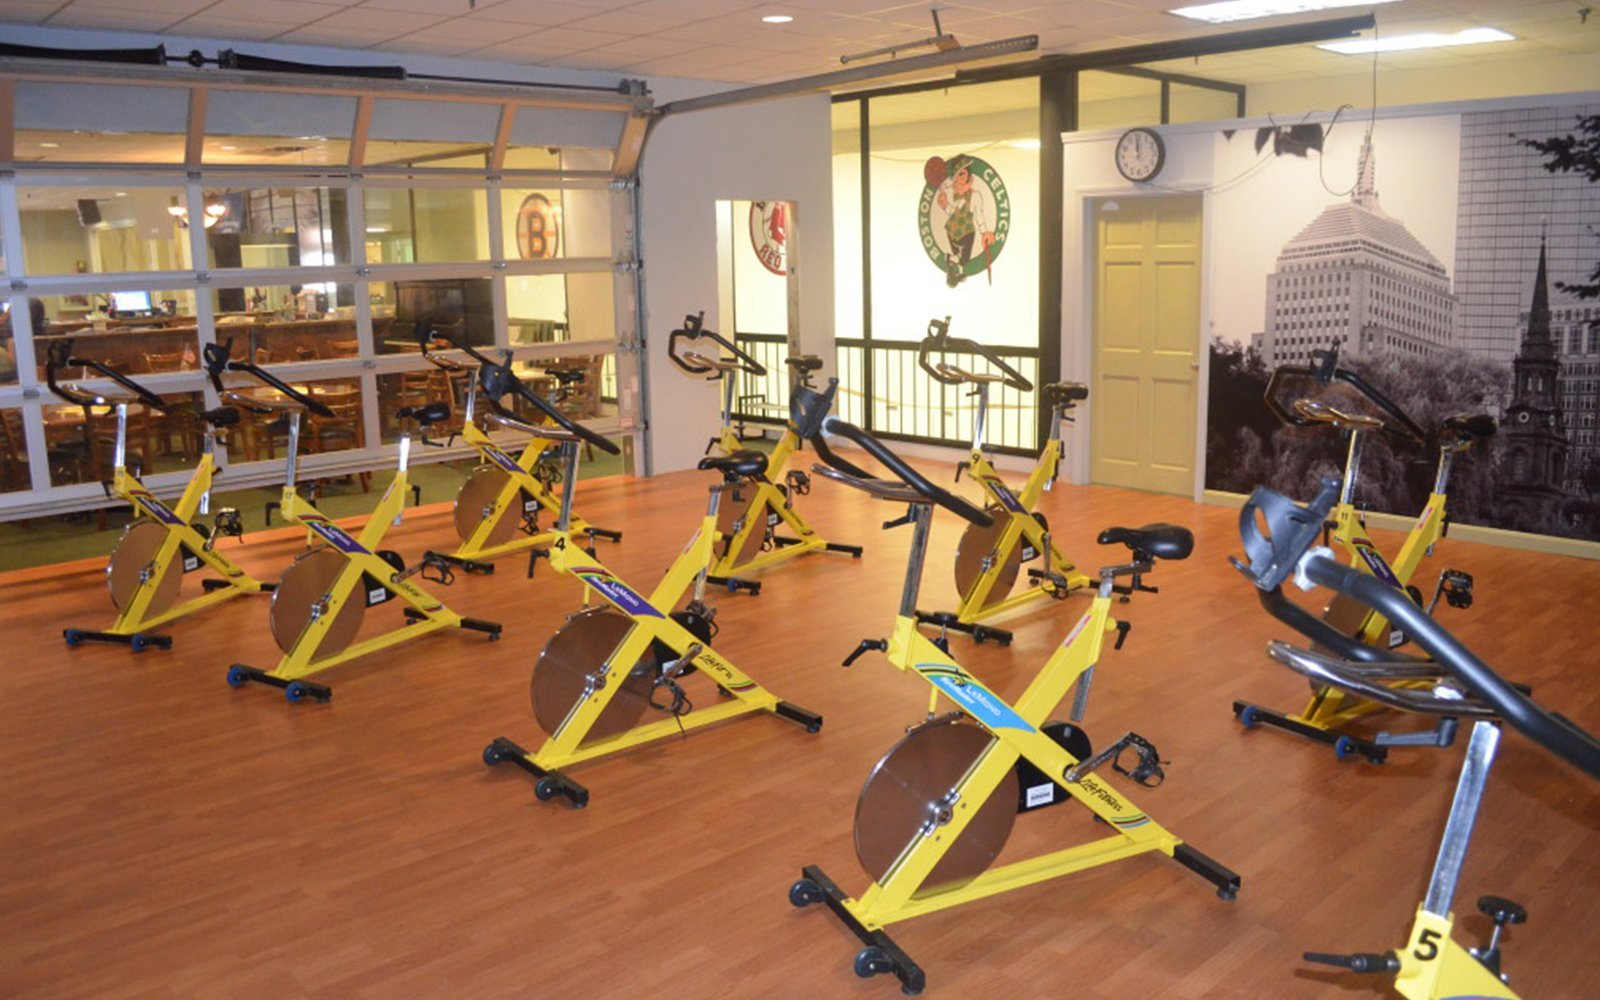 Fitness room with bikes